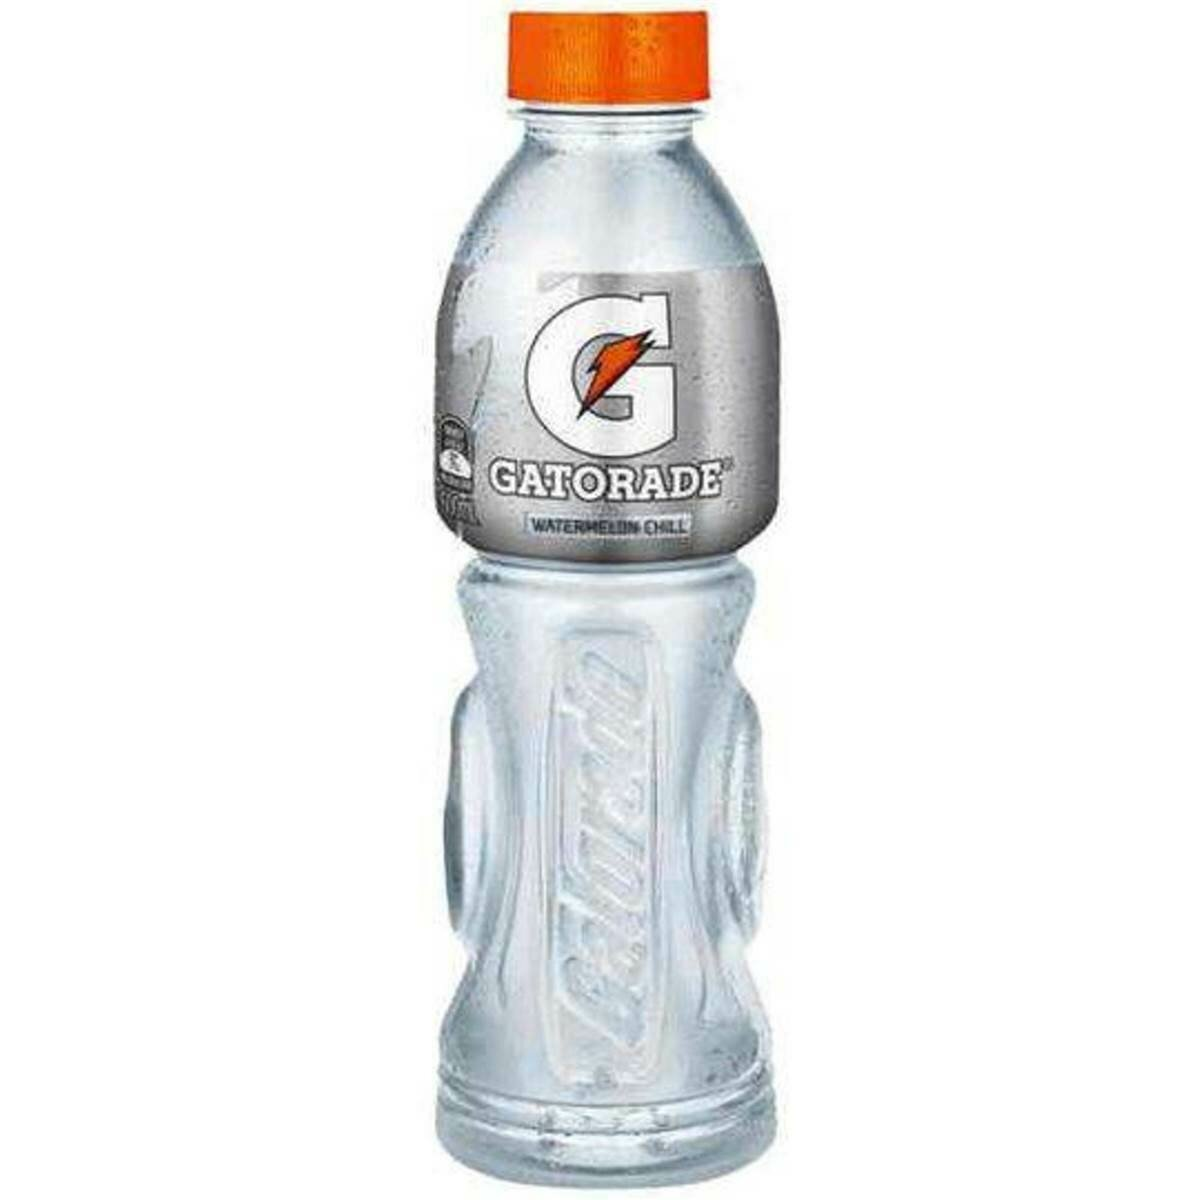 Gatorade Watermelon Chill 600ML